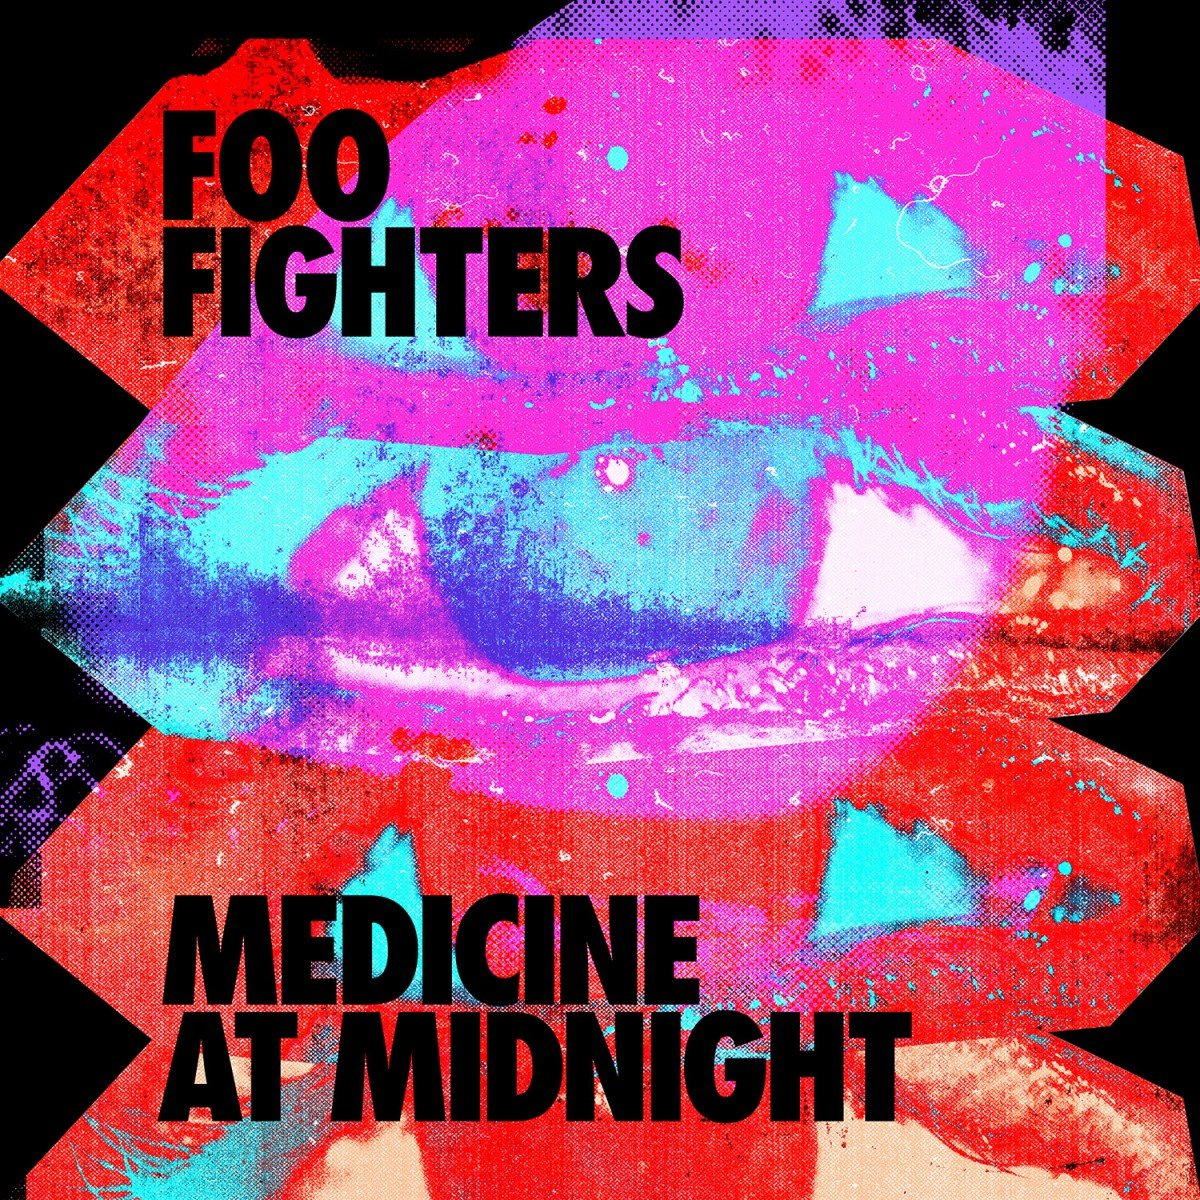 foo fighers album Medicine At Midnight 2021 cover art poster